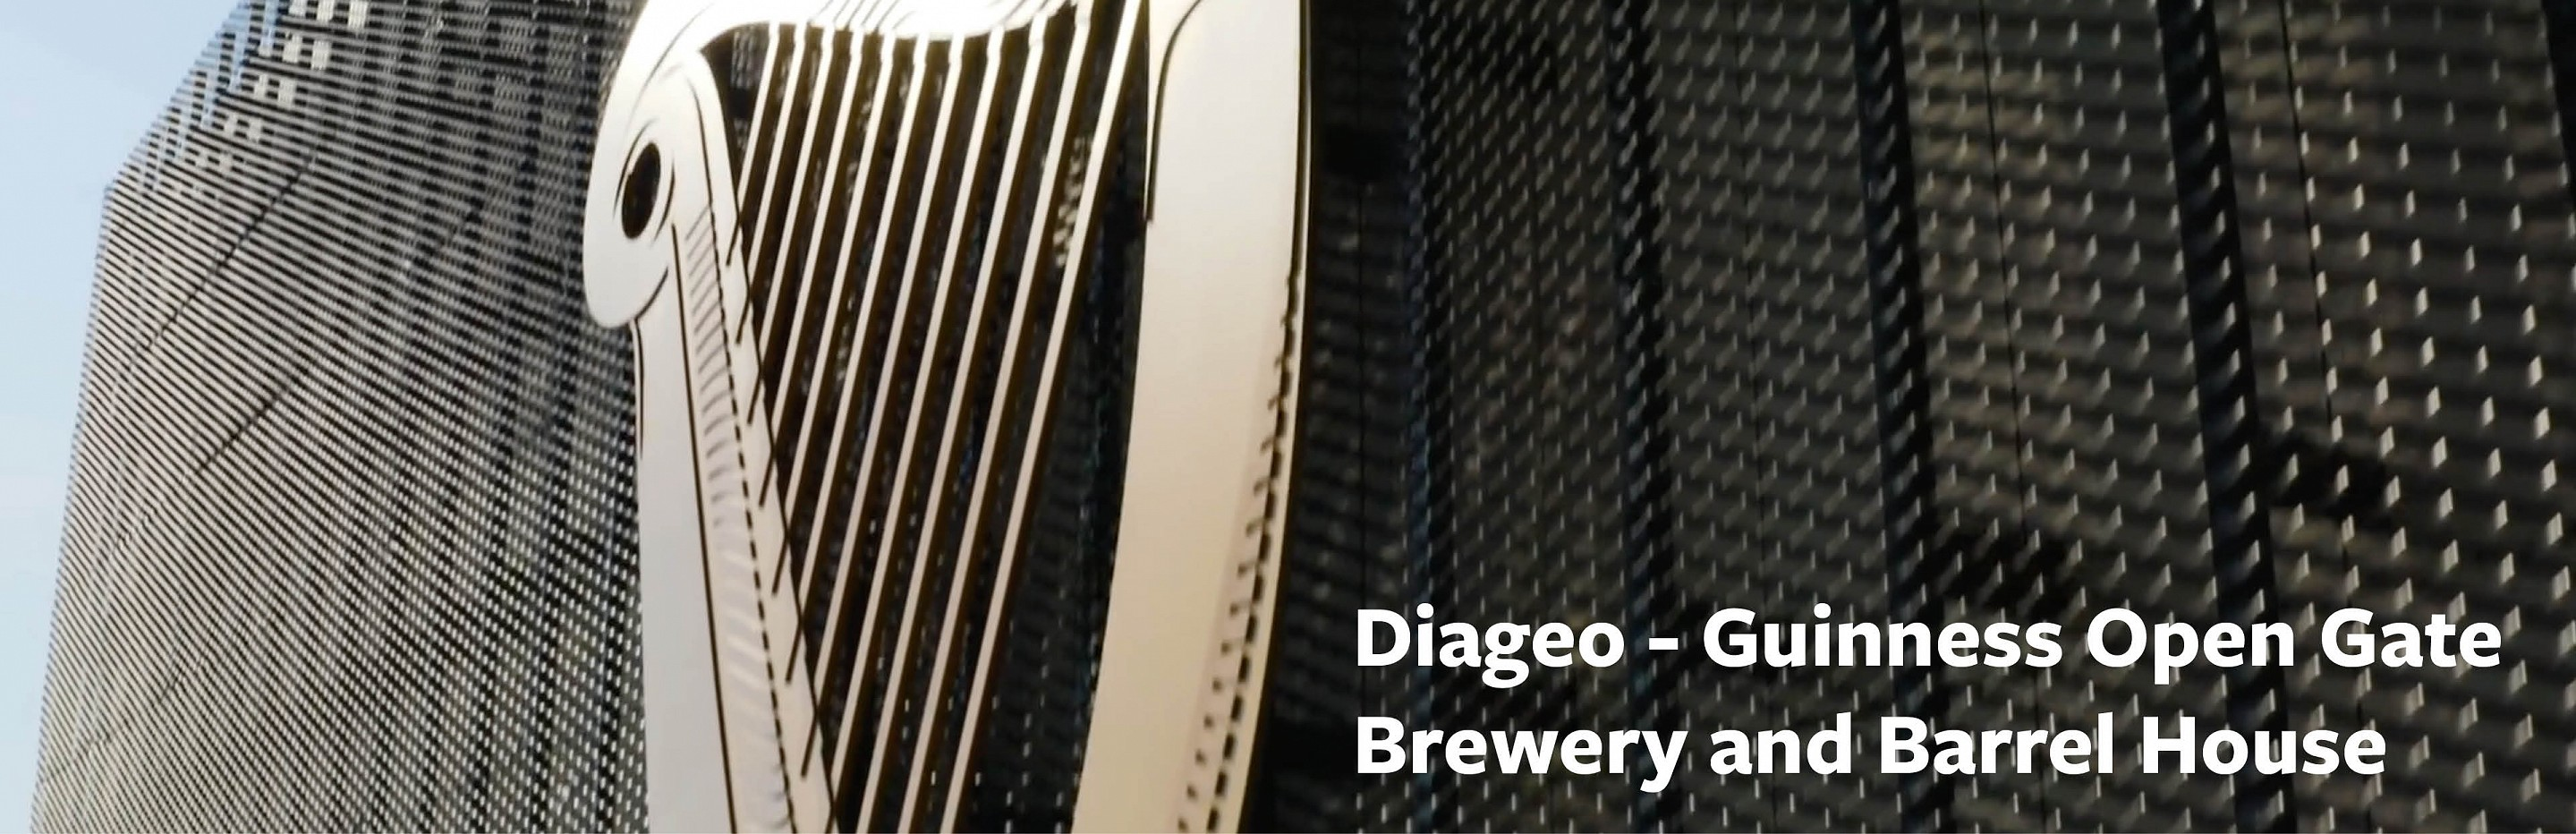 Diageo - Guinness Open Gate Brewery and Barrel House